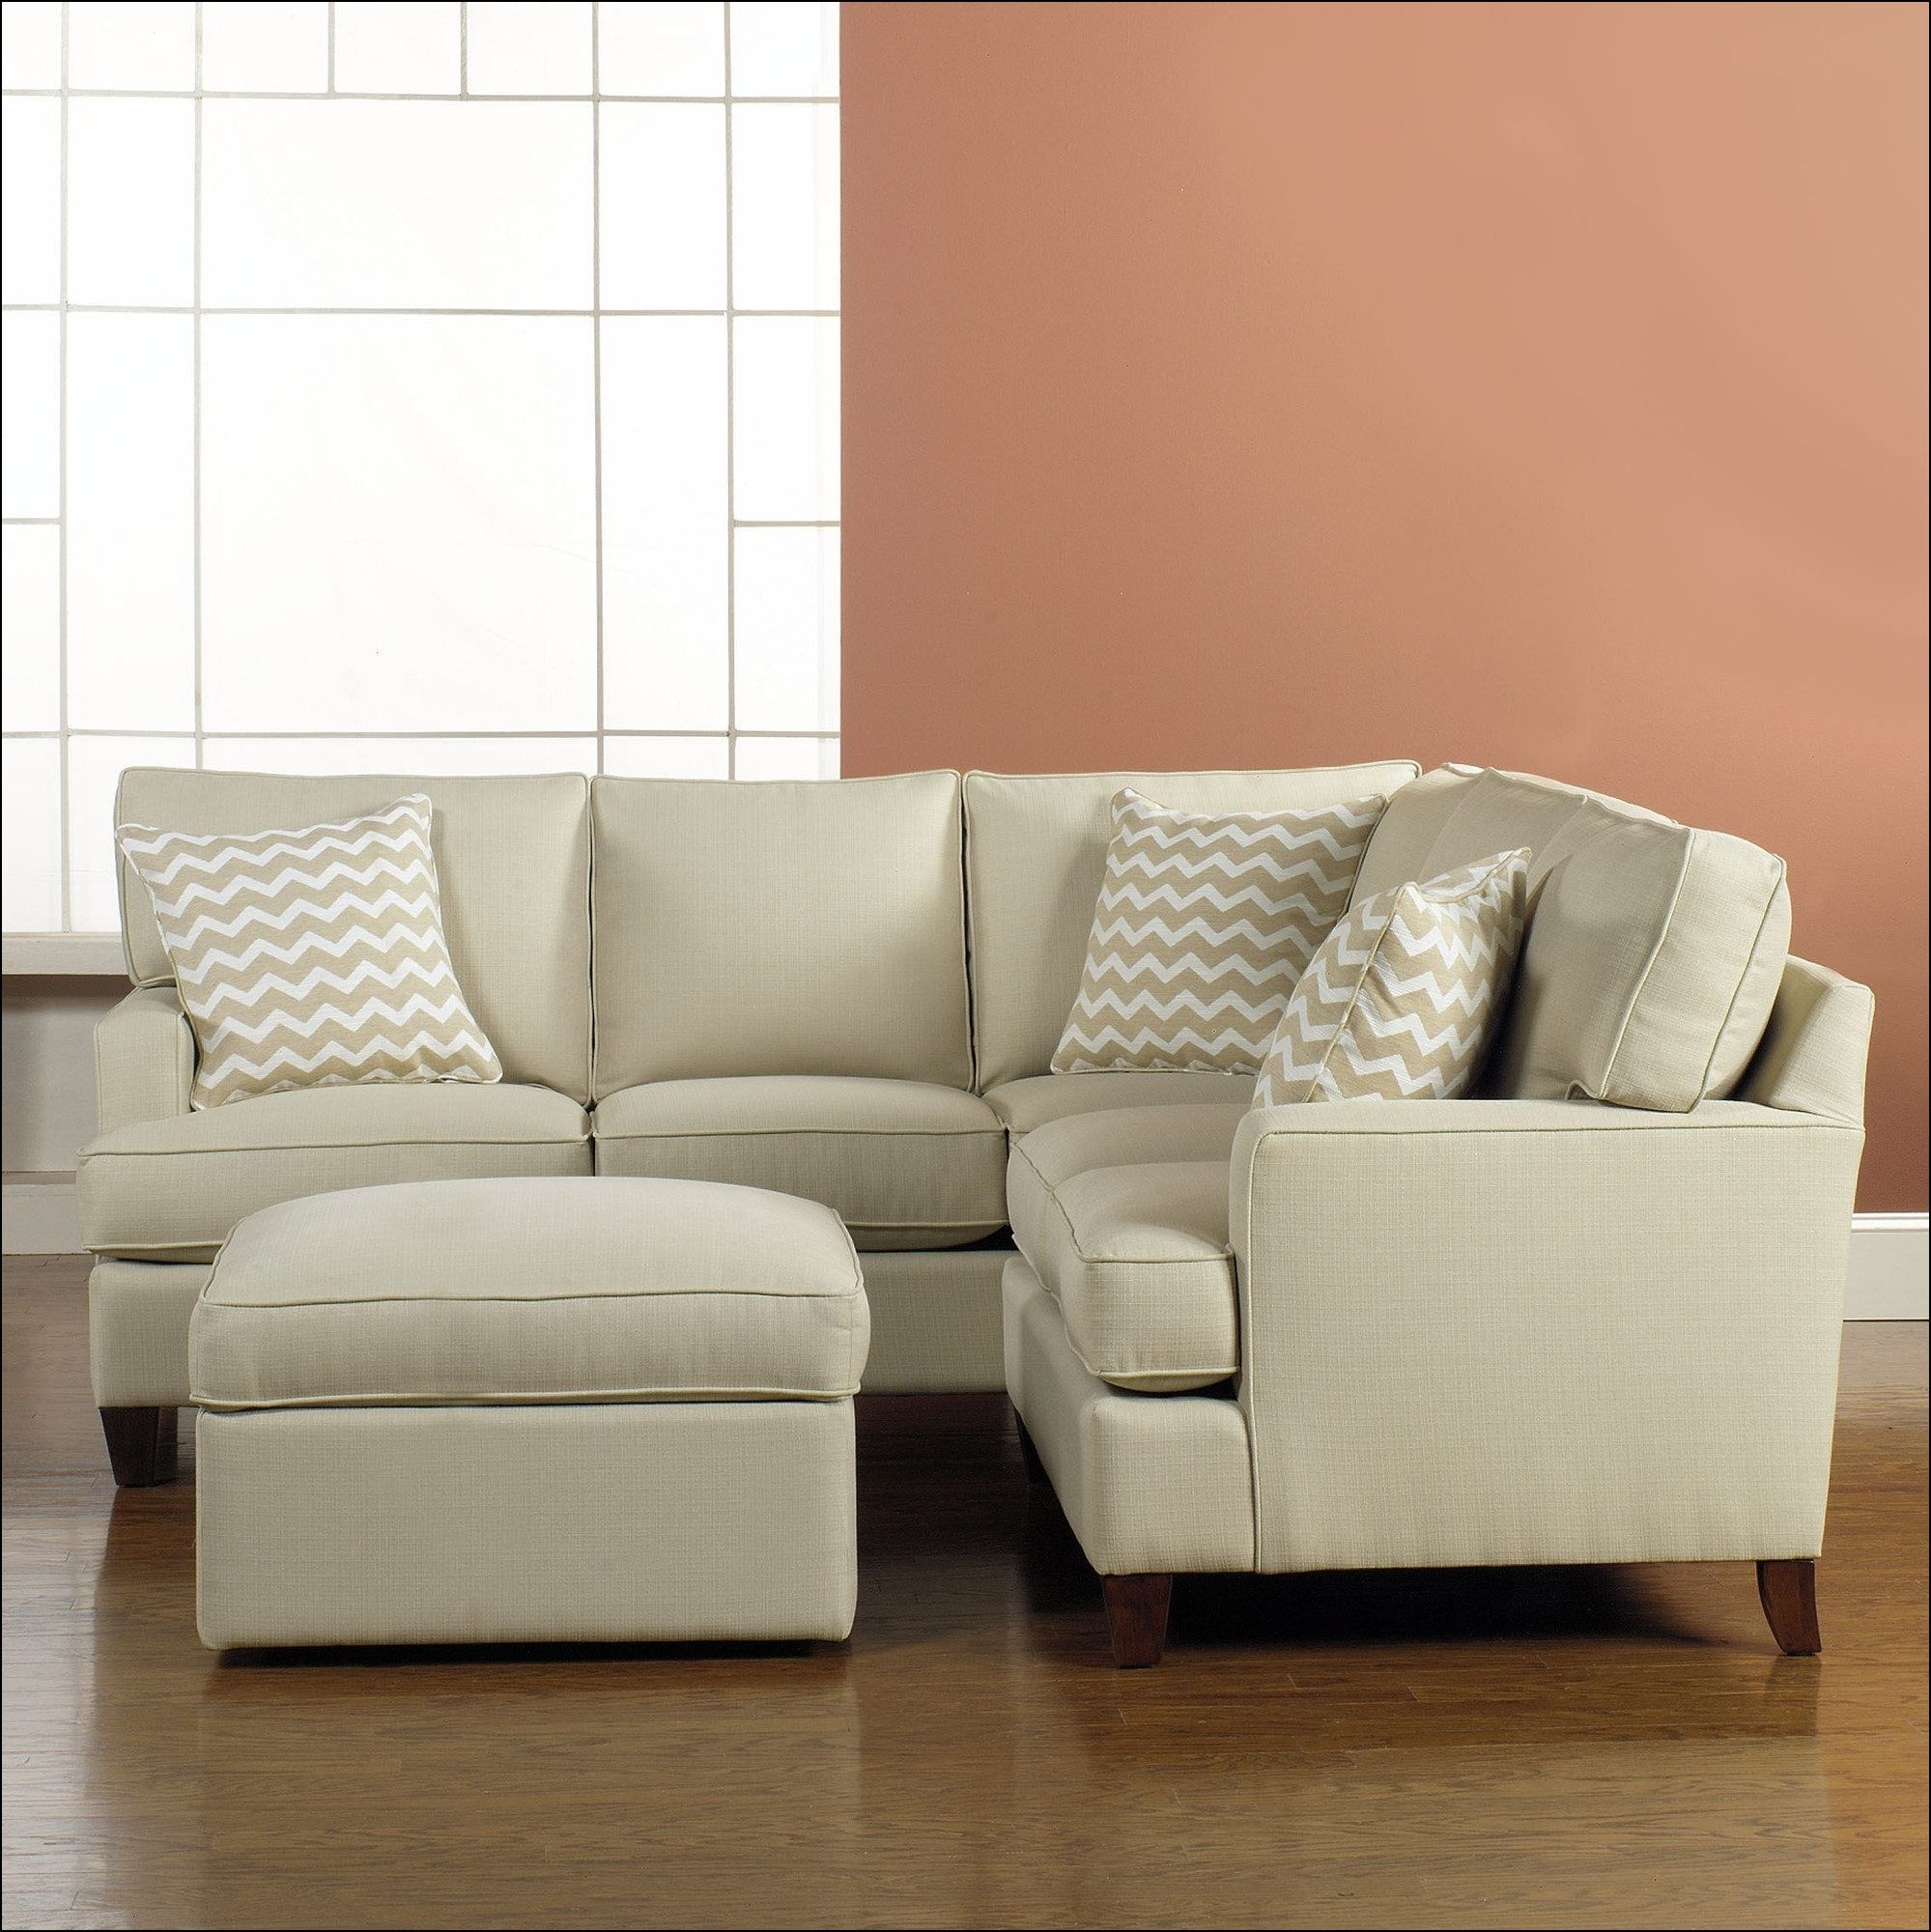 Sectional or sofa for small living room #sectional #or #sofa #for #small #living #room